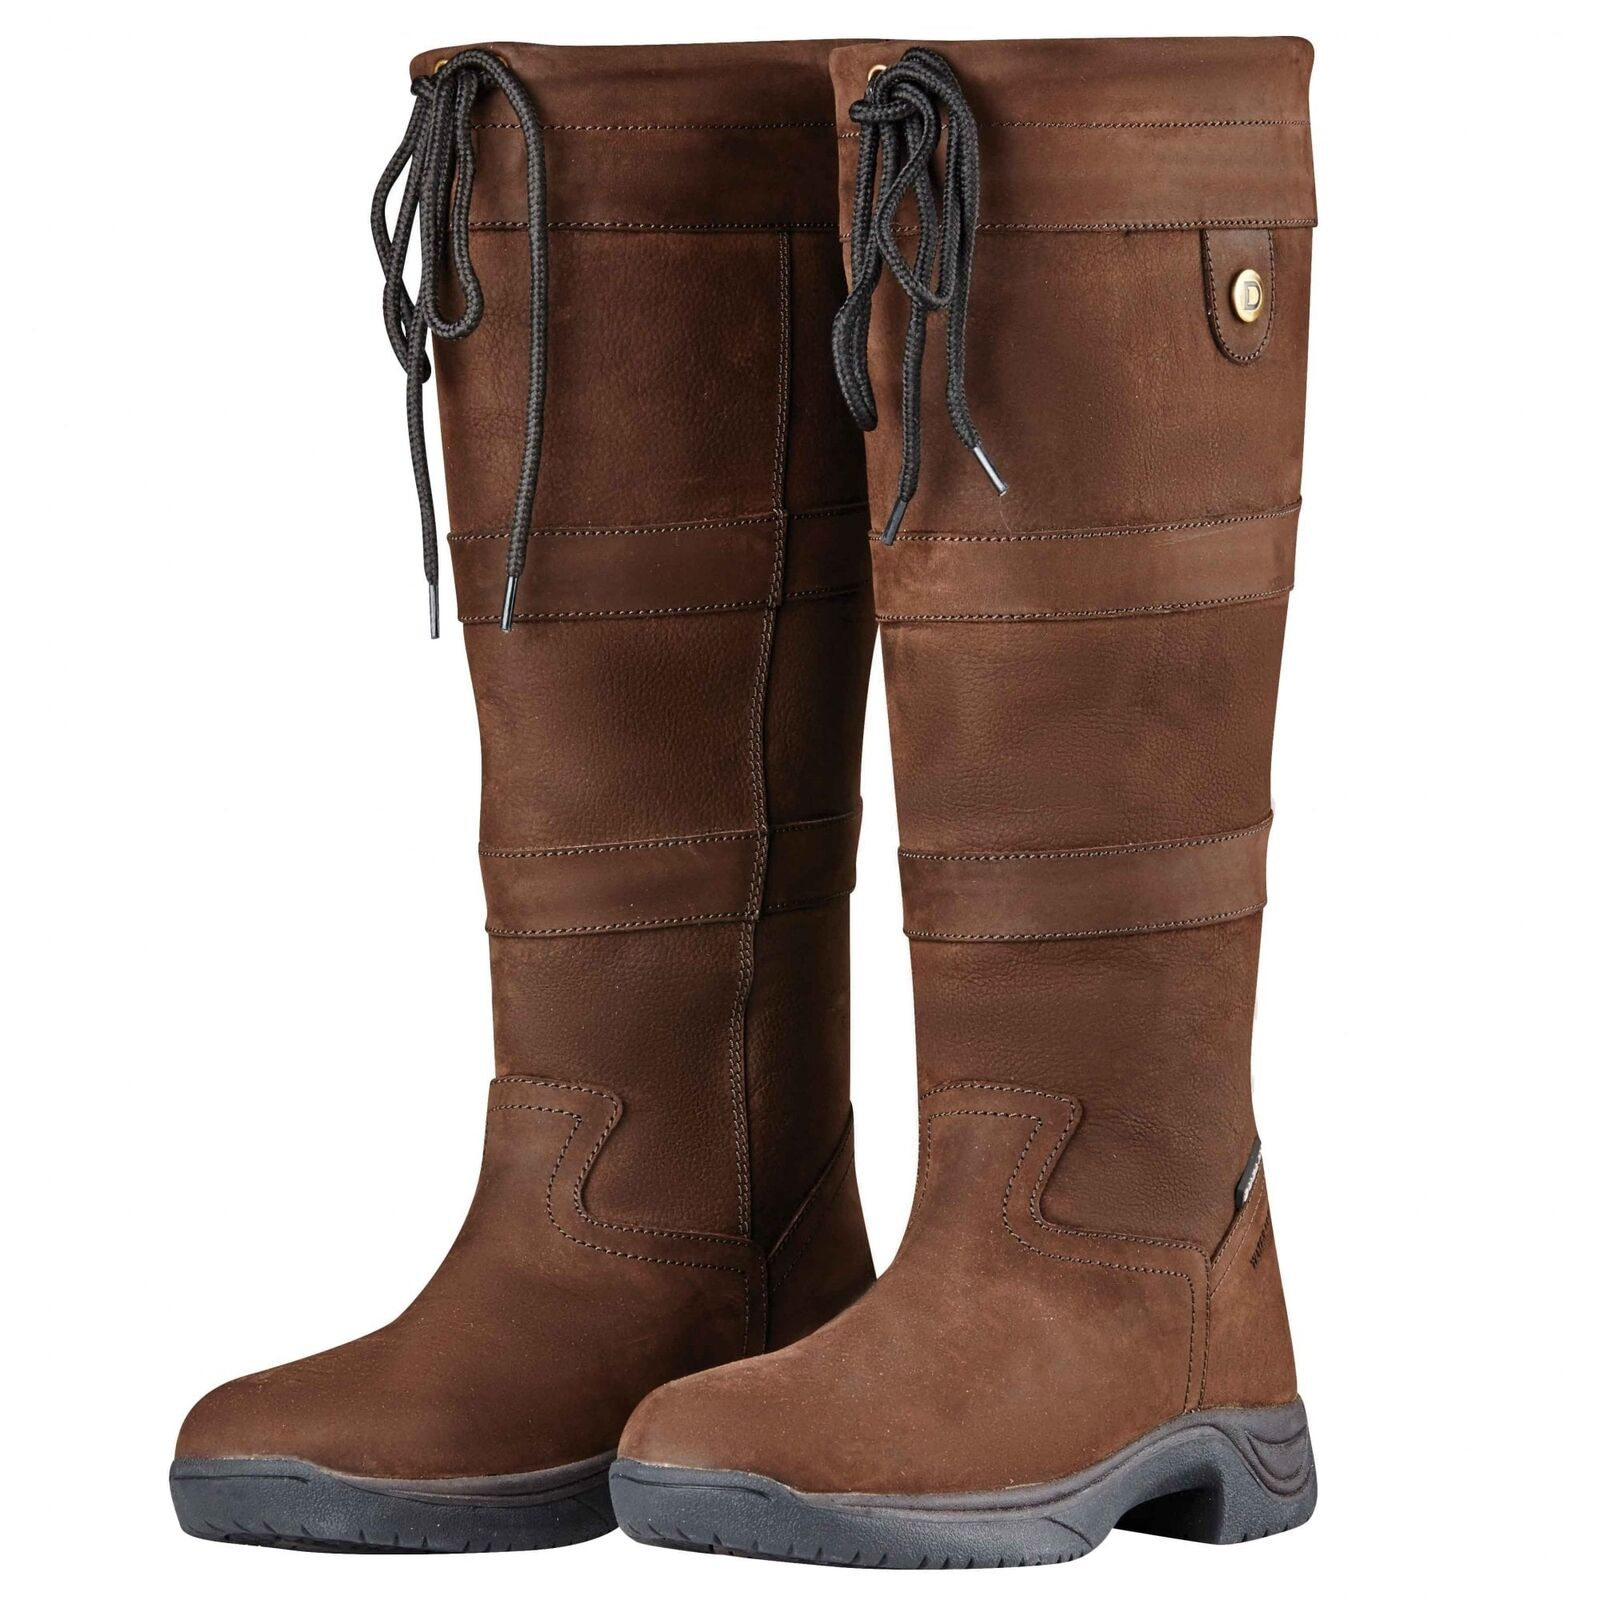 Dublin River Boots III Chocolate (Regular Fit) Country Boots UK SHOE SIZES